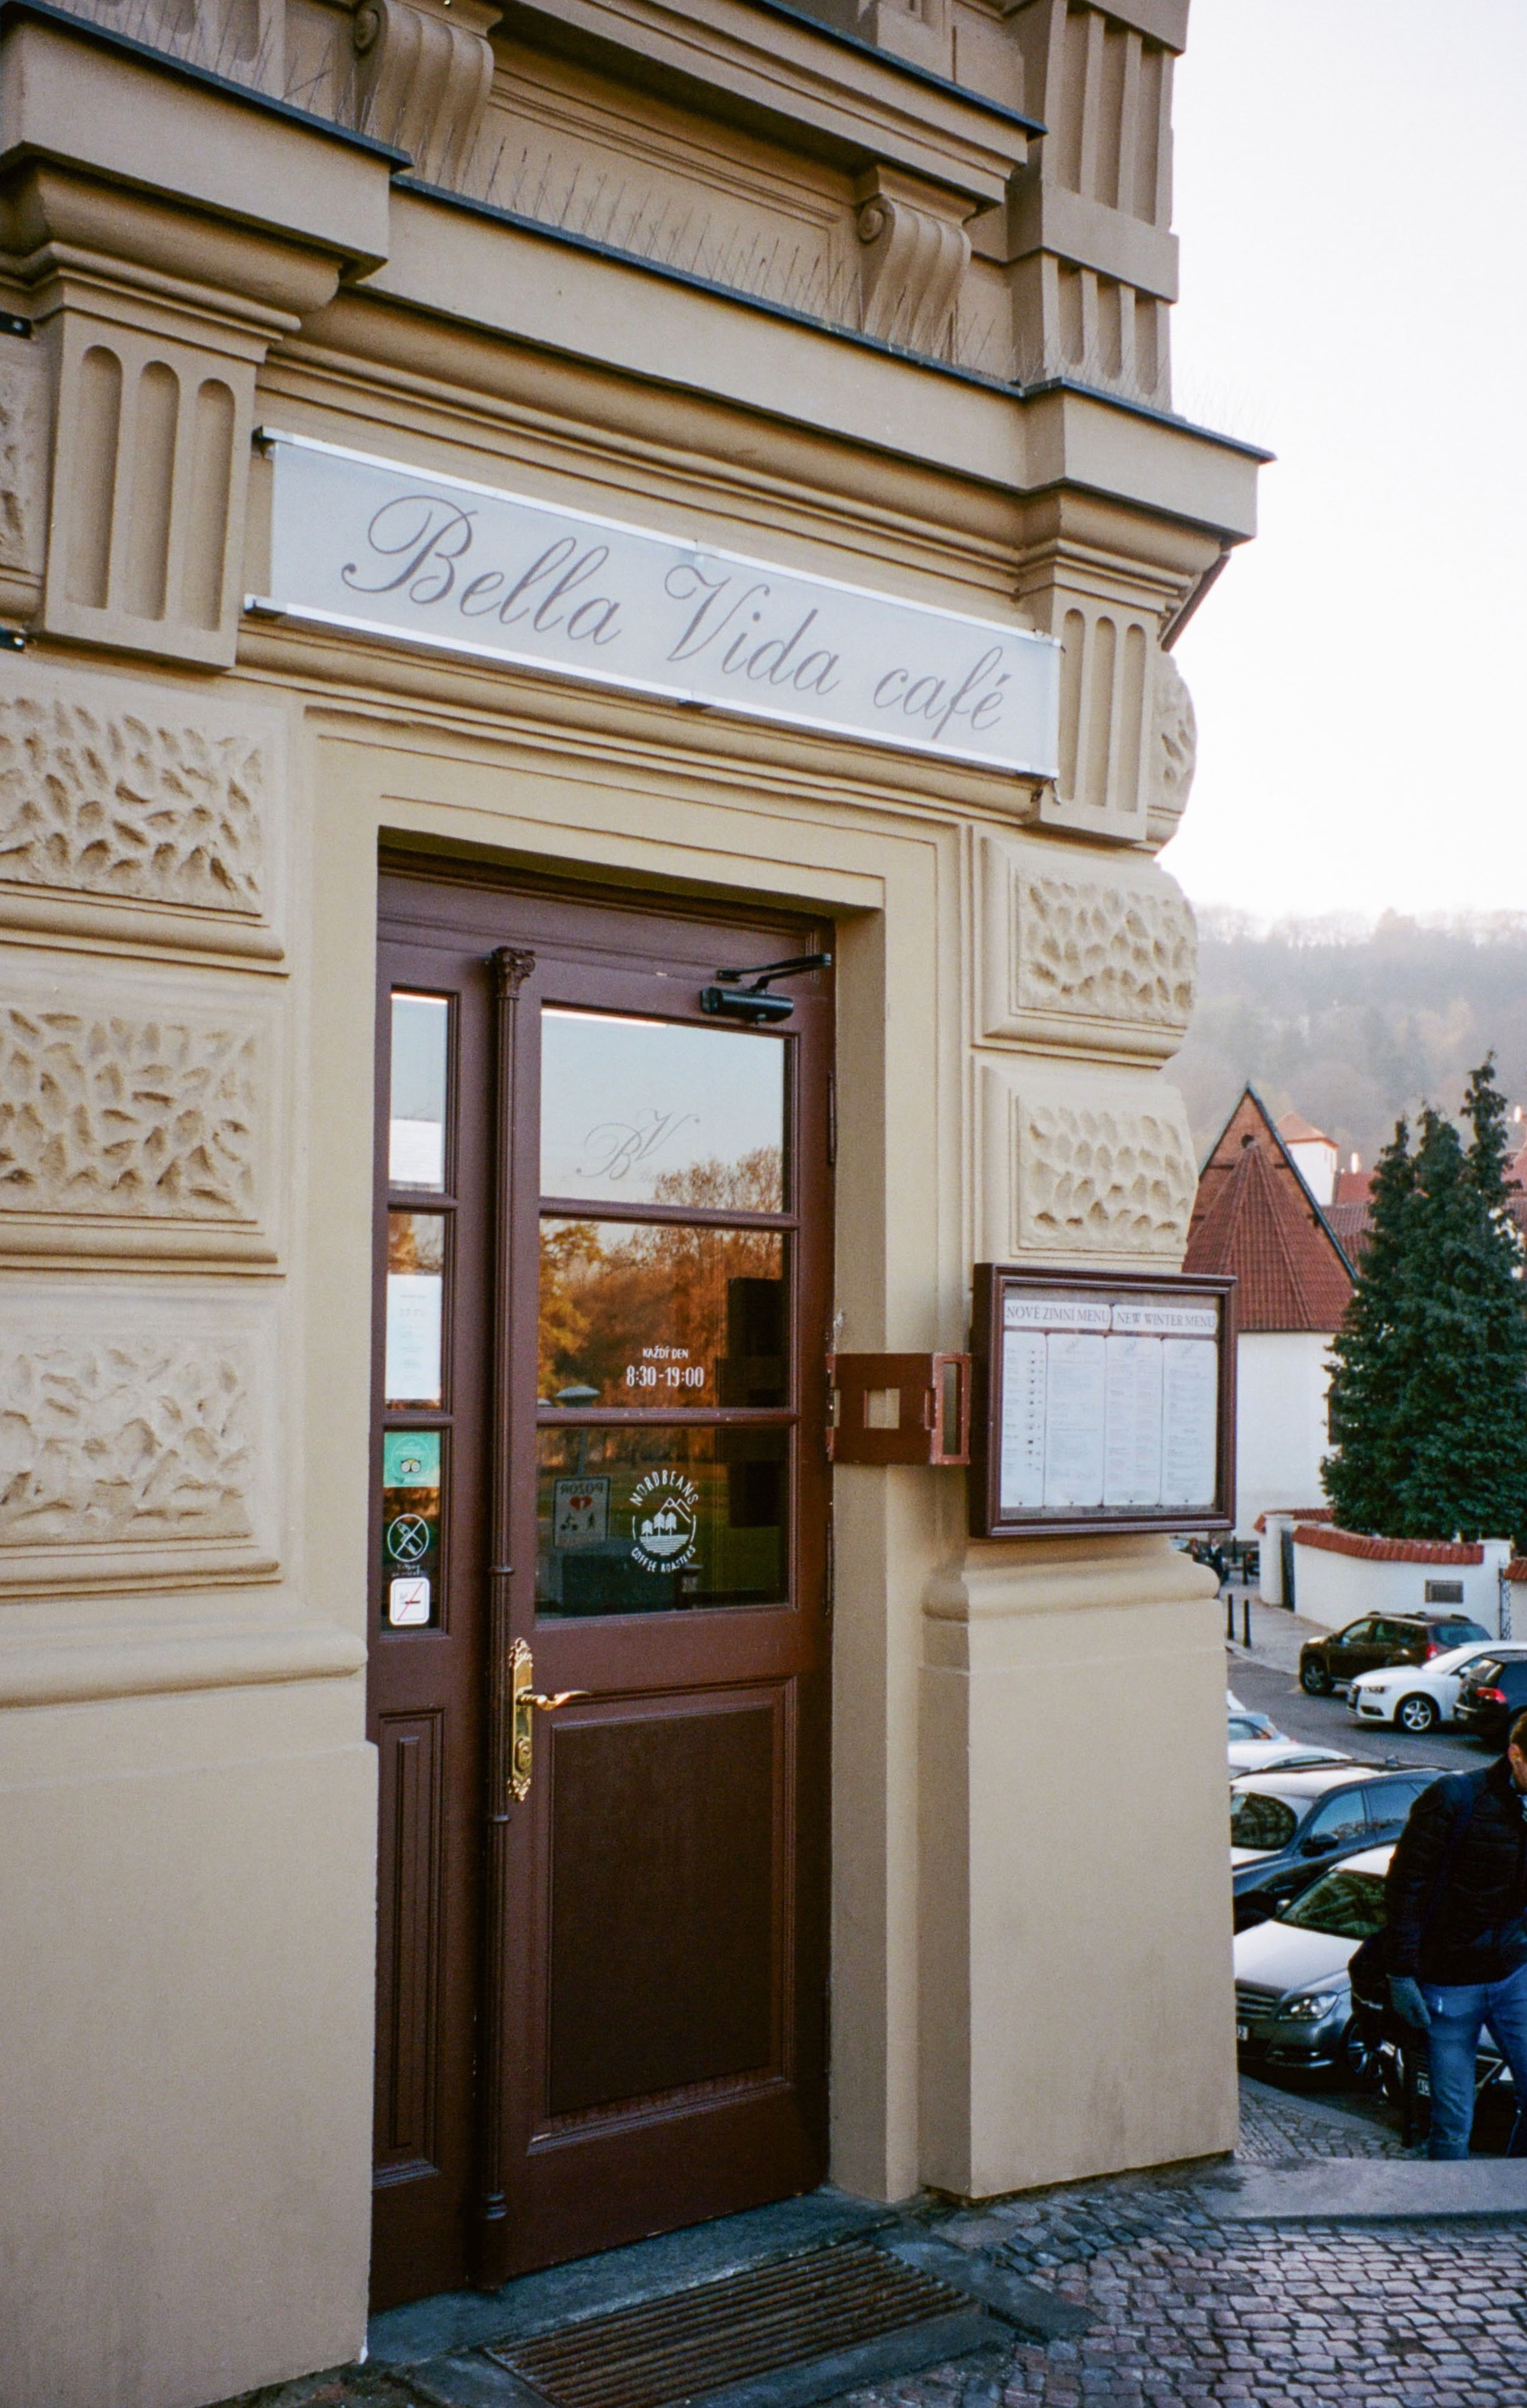 Bella Vida cafe, located within close proximity to Charles Bridge. Perfect for a coffee break!